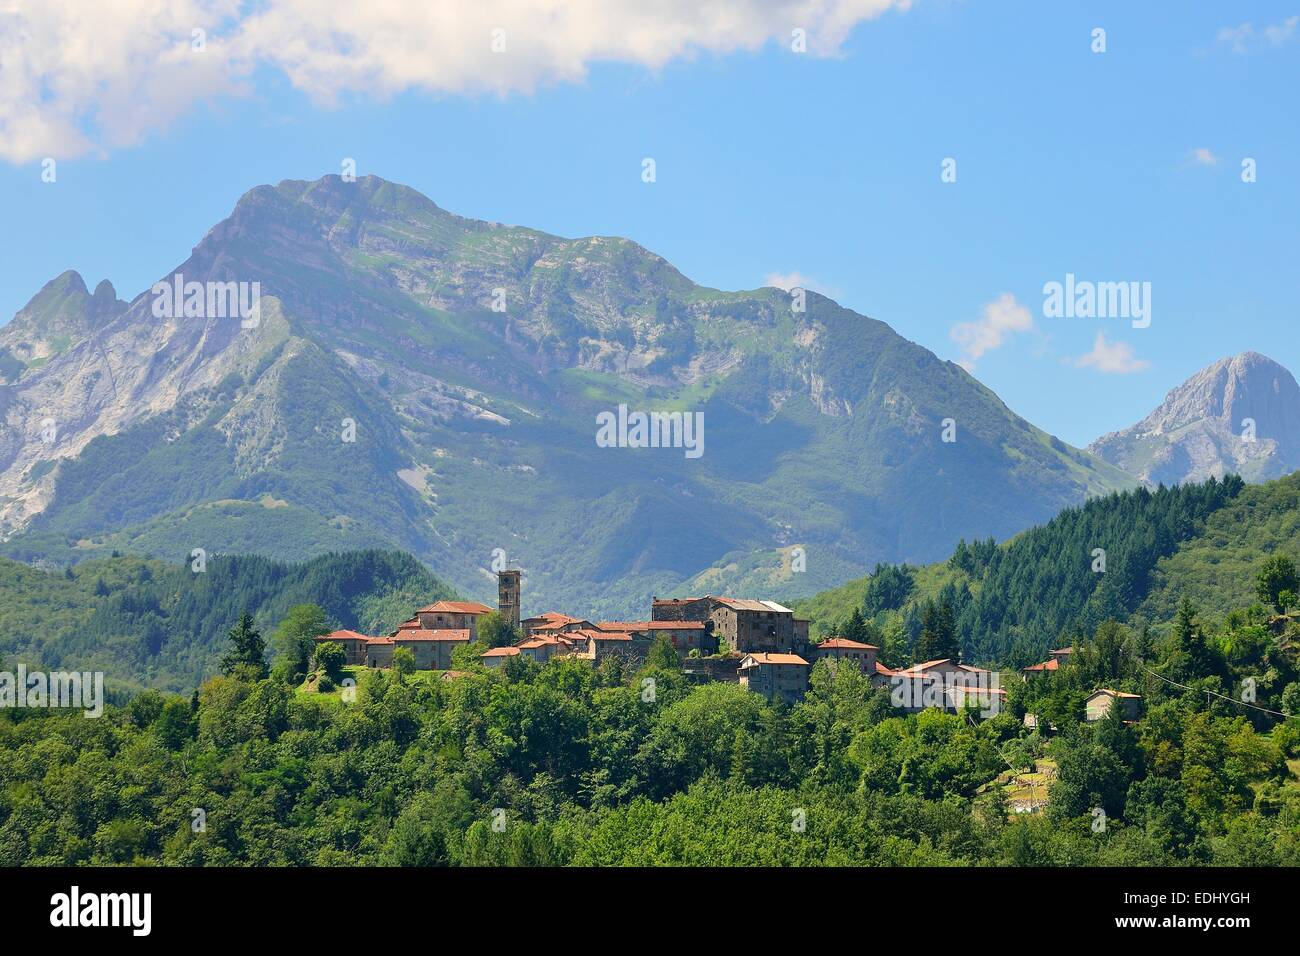 Landscape in the Apuan Alps, near San Michele, Garfagnana, Province of Lucca, Tuscany, Italy - Stock Image